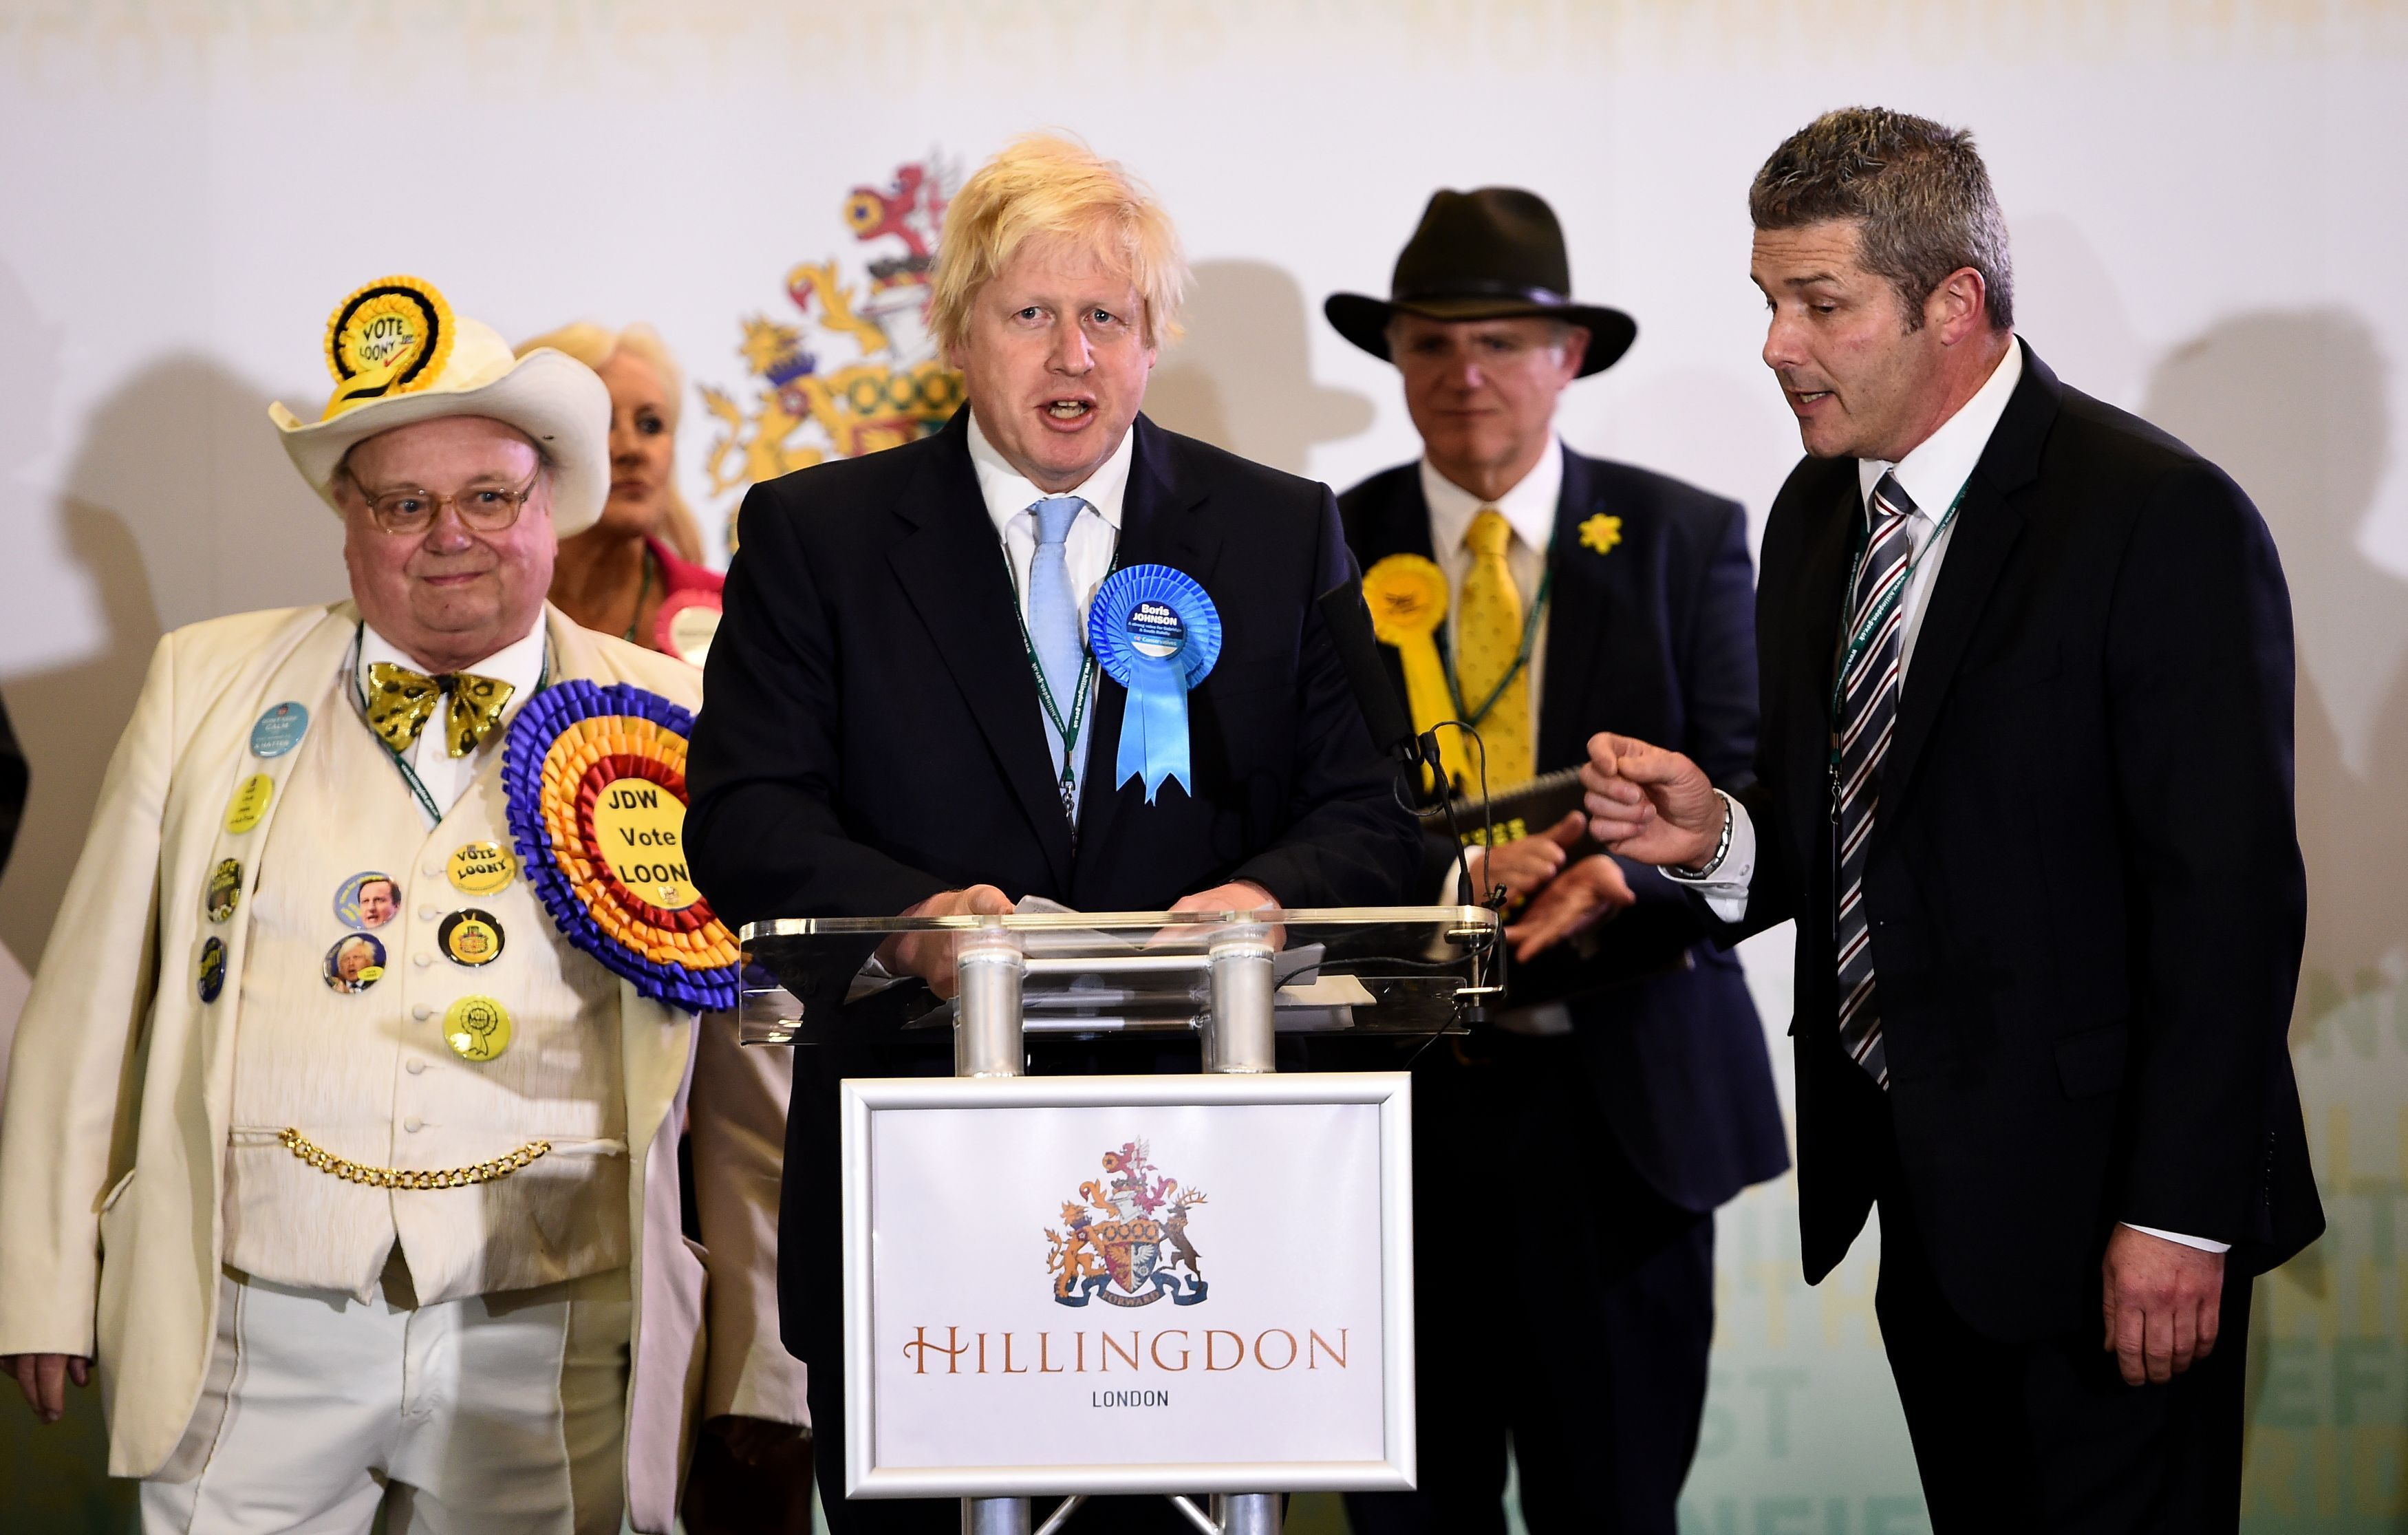 Independent candidate Michael Doherty (right) attempts to interrupt Mayor of London Boris Johnson as he makes a speech after winning the Uxbridge and South Ruislip seat during the General Election count at Brunel University, London.